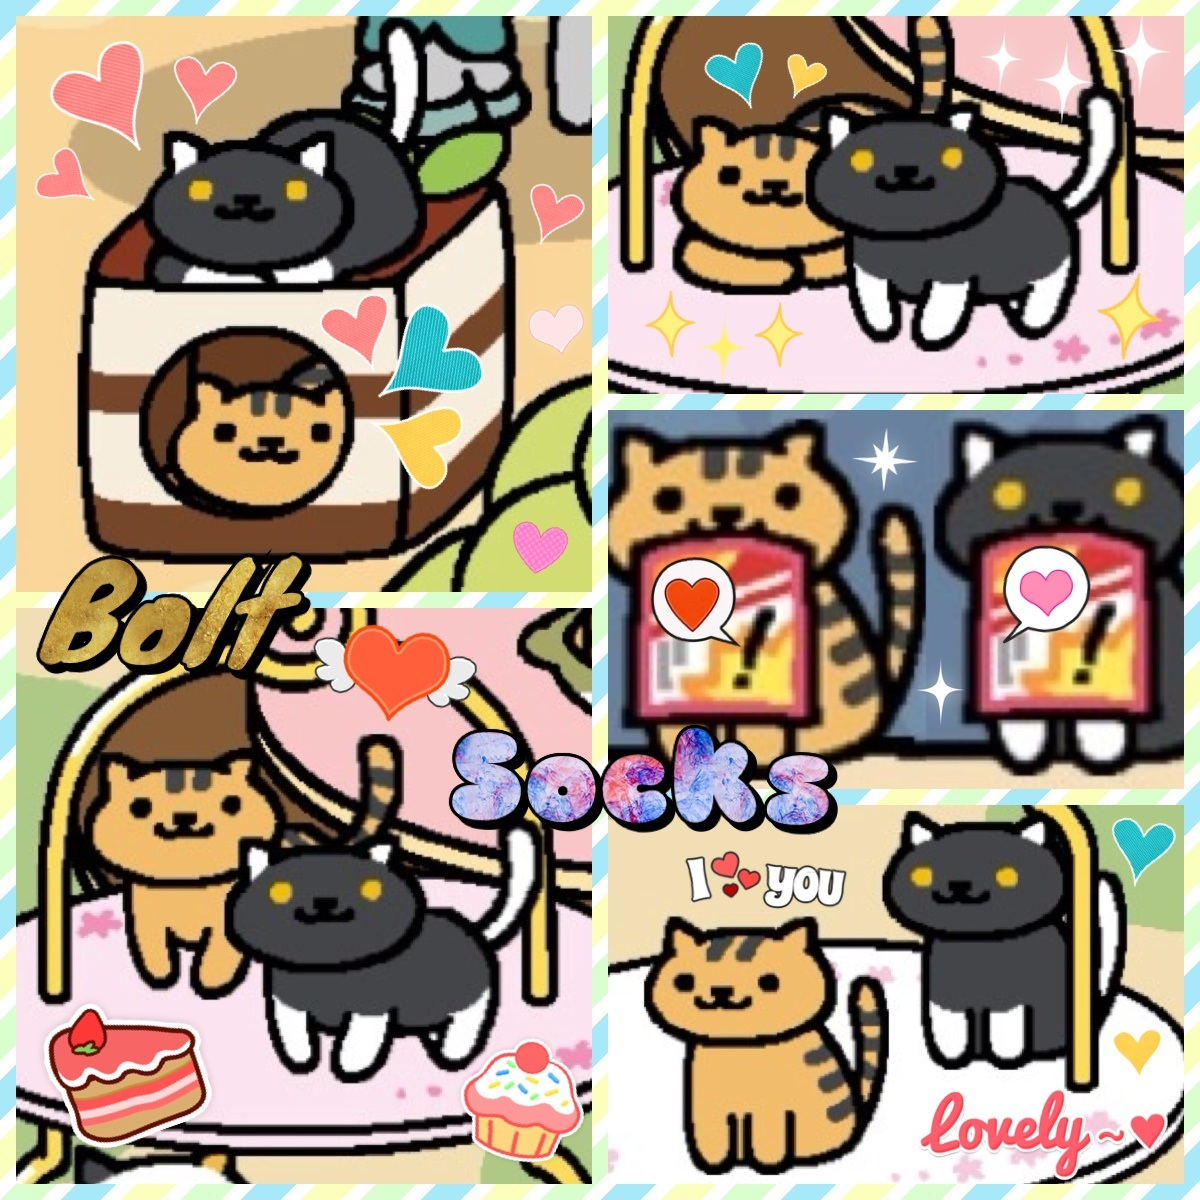 Neko atsume images bolt and socks hd wallpaper and background neko atsume images bolt and socks hd wallpaper and background photos voltagebd Choice Image